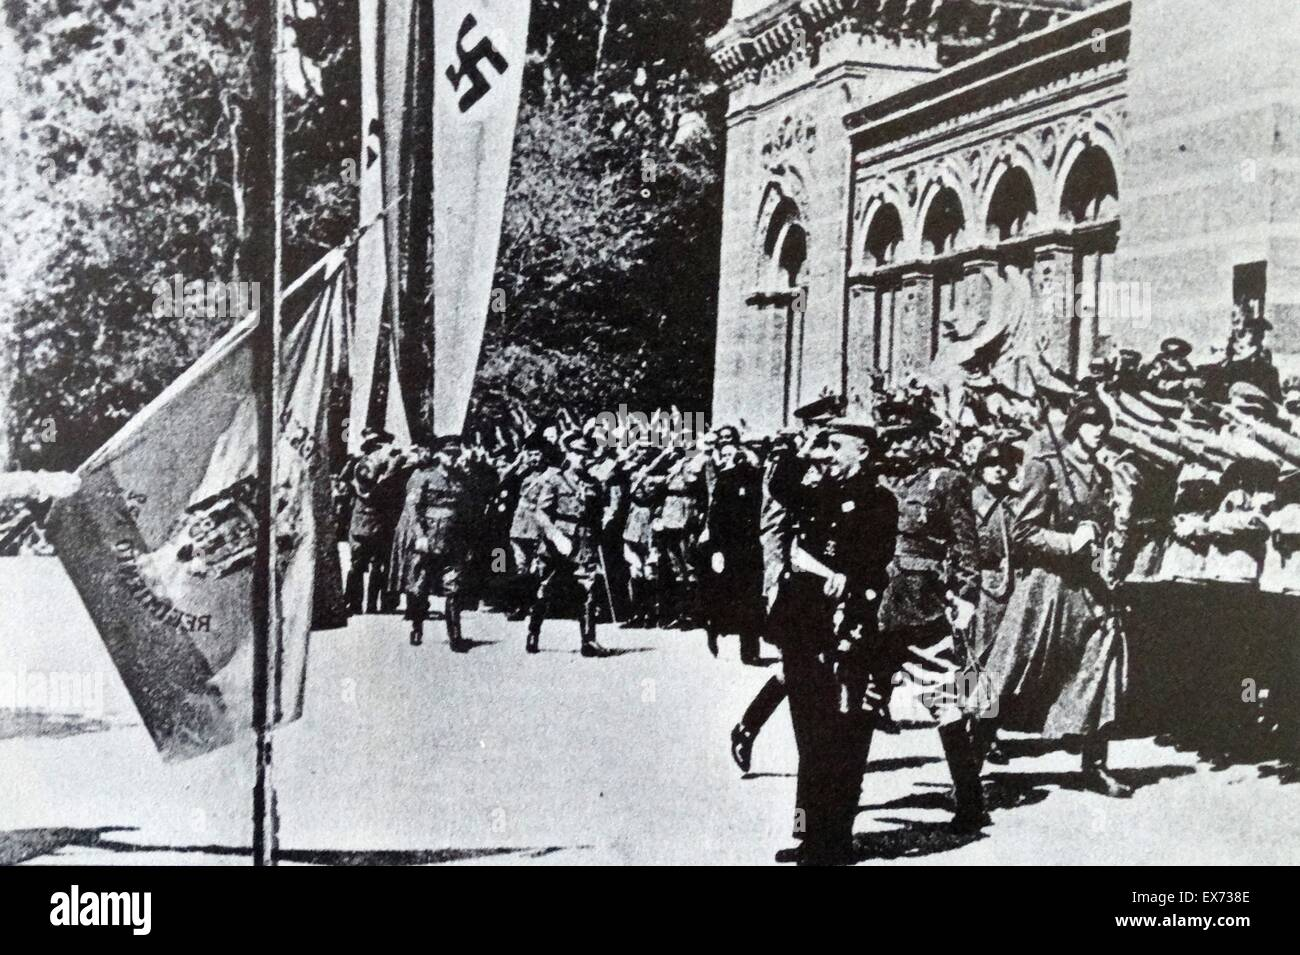 General Franco takes the salute at a parade while German soldiers look on during the Spanish Civil War - Stock Image